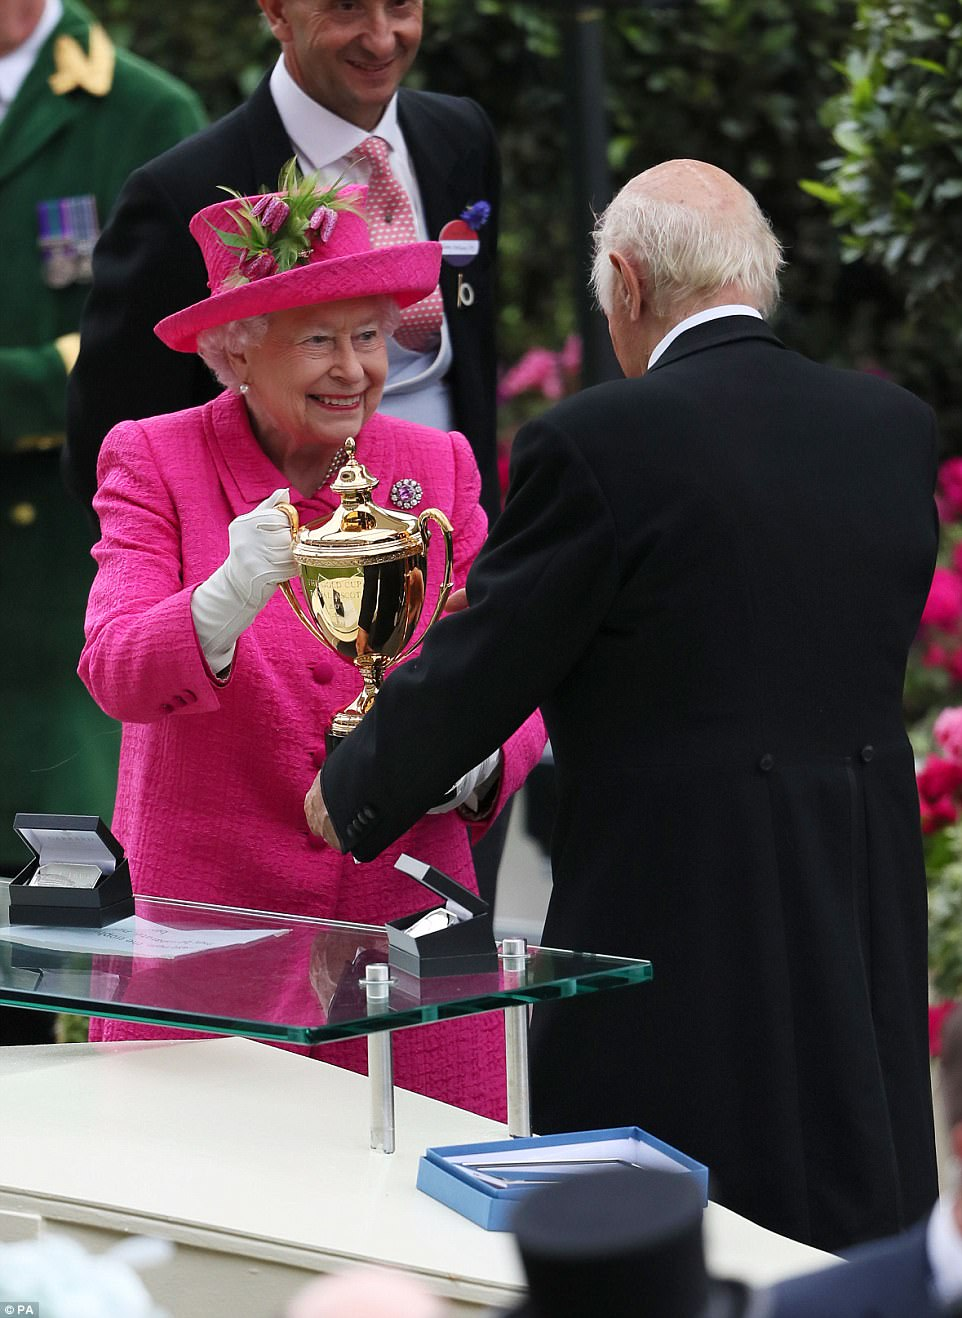 The Queen looks delighted as she holds the trophy to be presented to the owner of the Gold Cup's winning horse, Big Orange